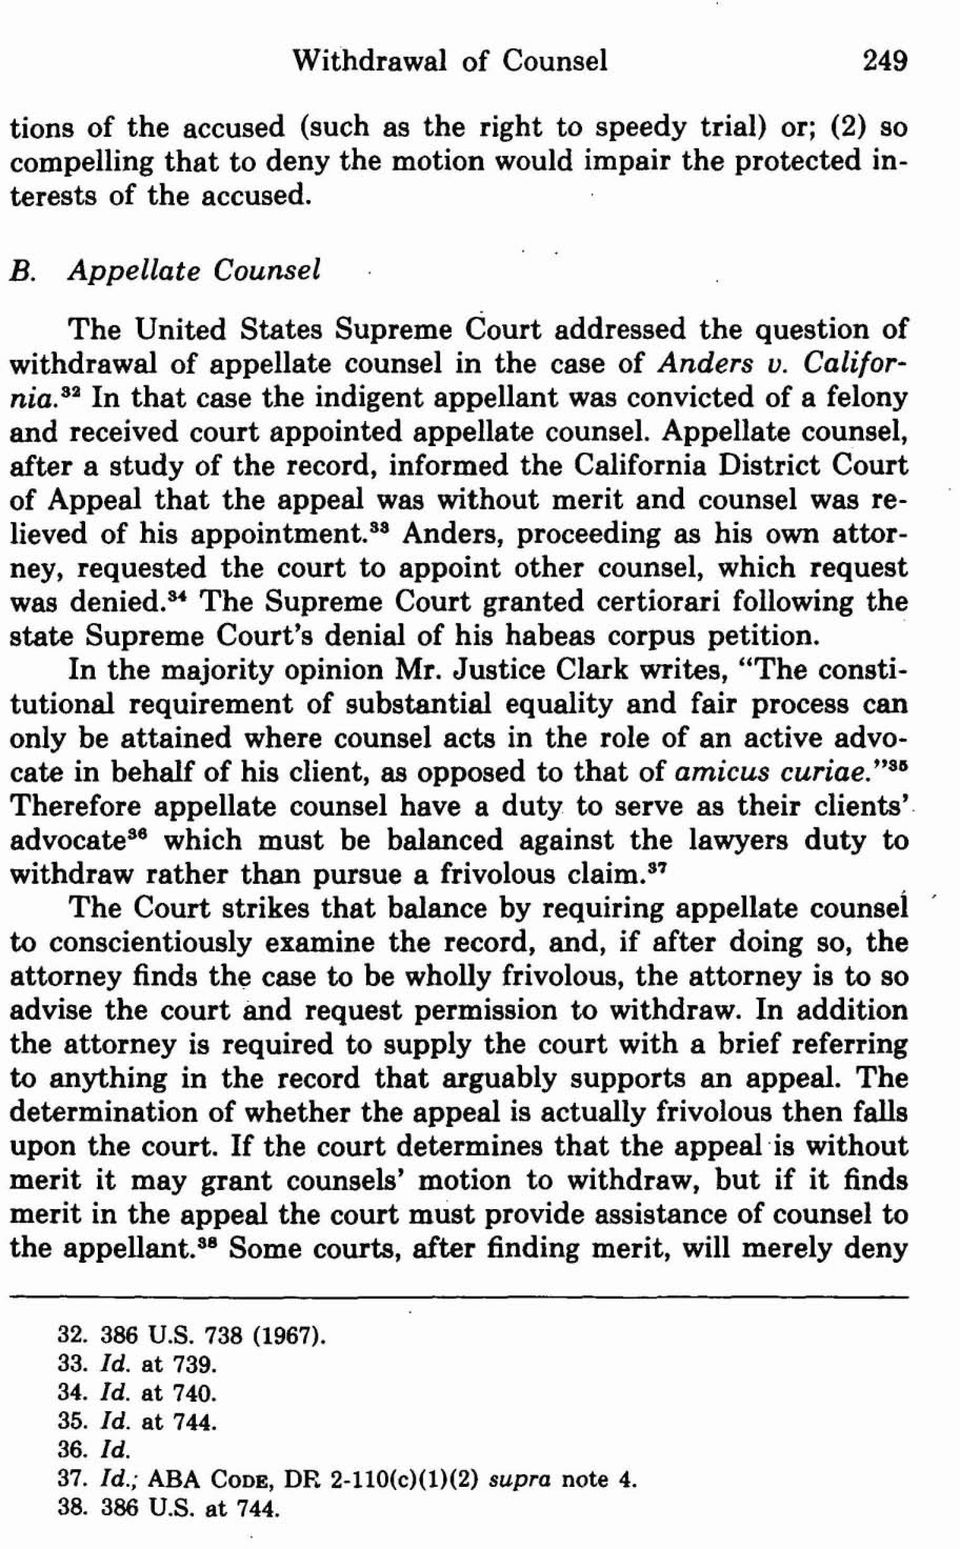 ~' In that case the indigent appellant was convicted of a felony and received court appointed appellate counsel.